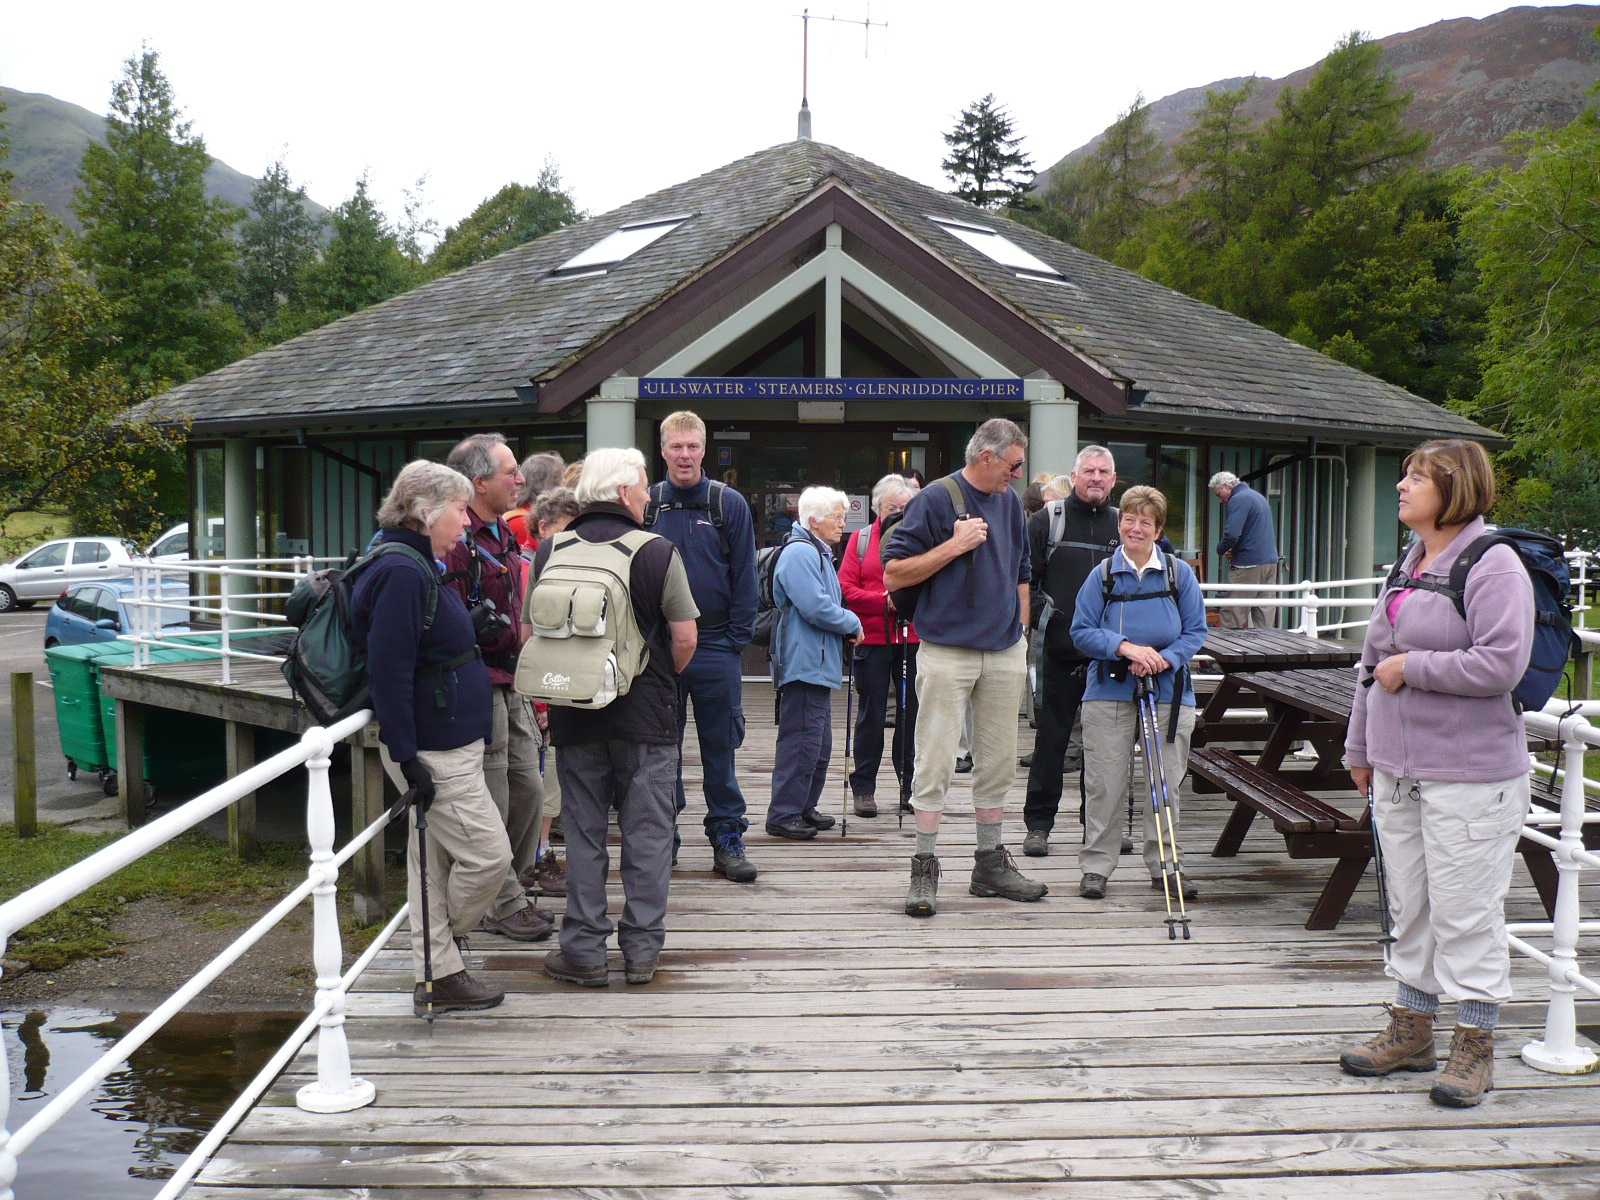 Hartsop hall cottages 171 walking holiday cottages walking - Ryedale Walking Group On The Jetty At Glenridding